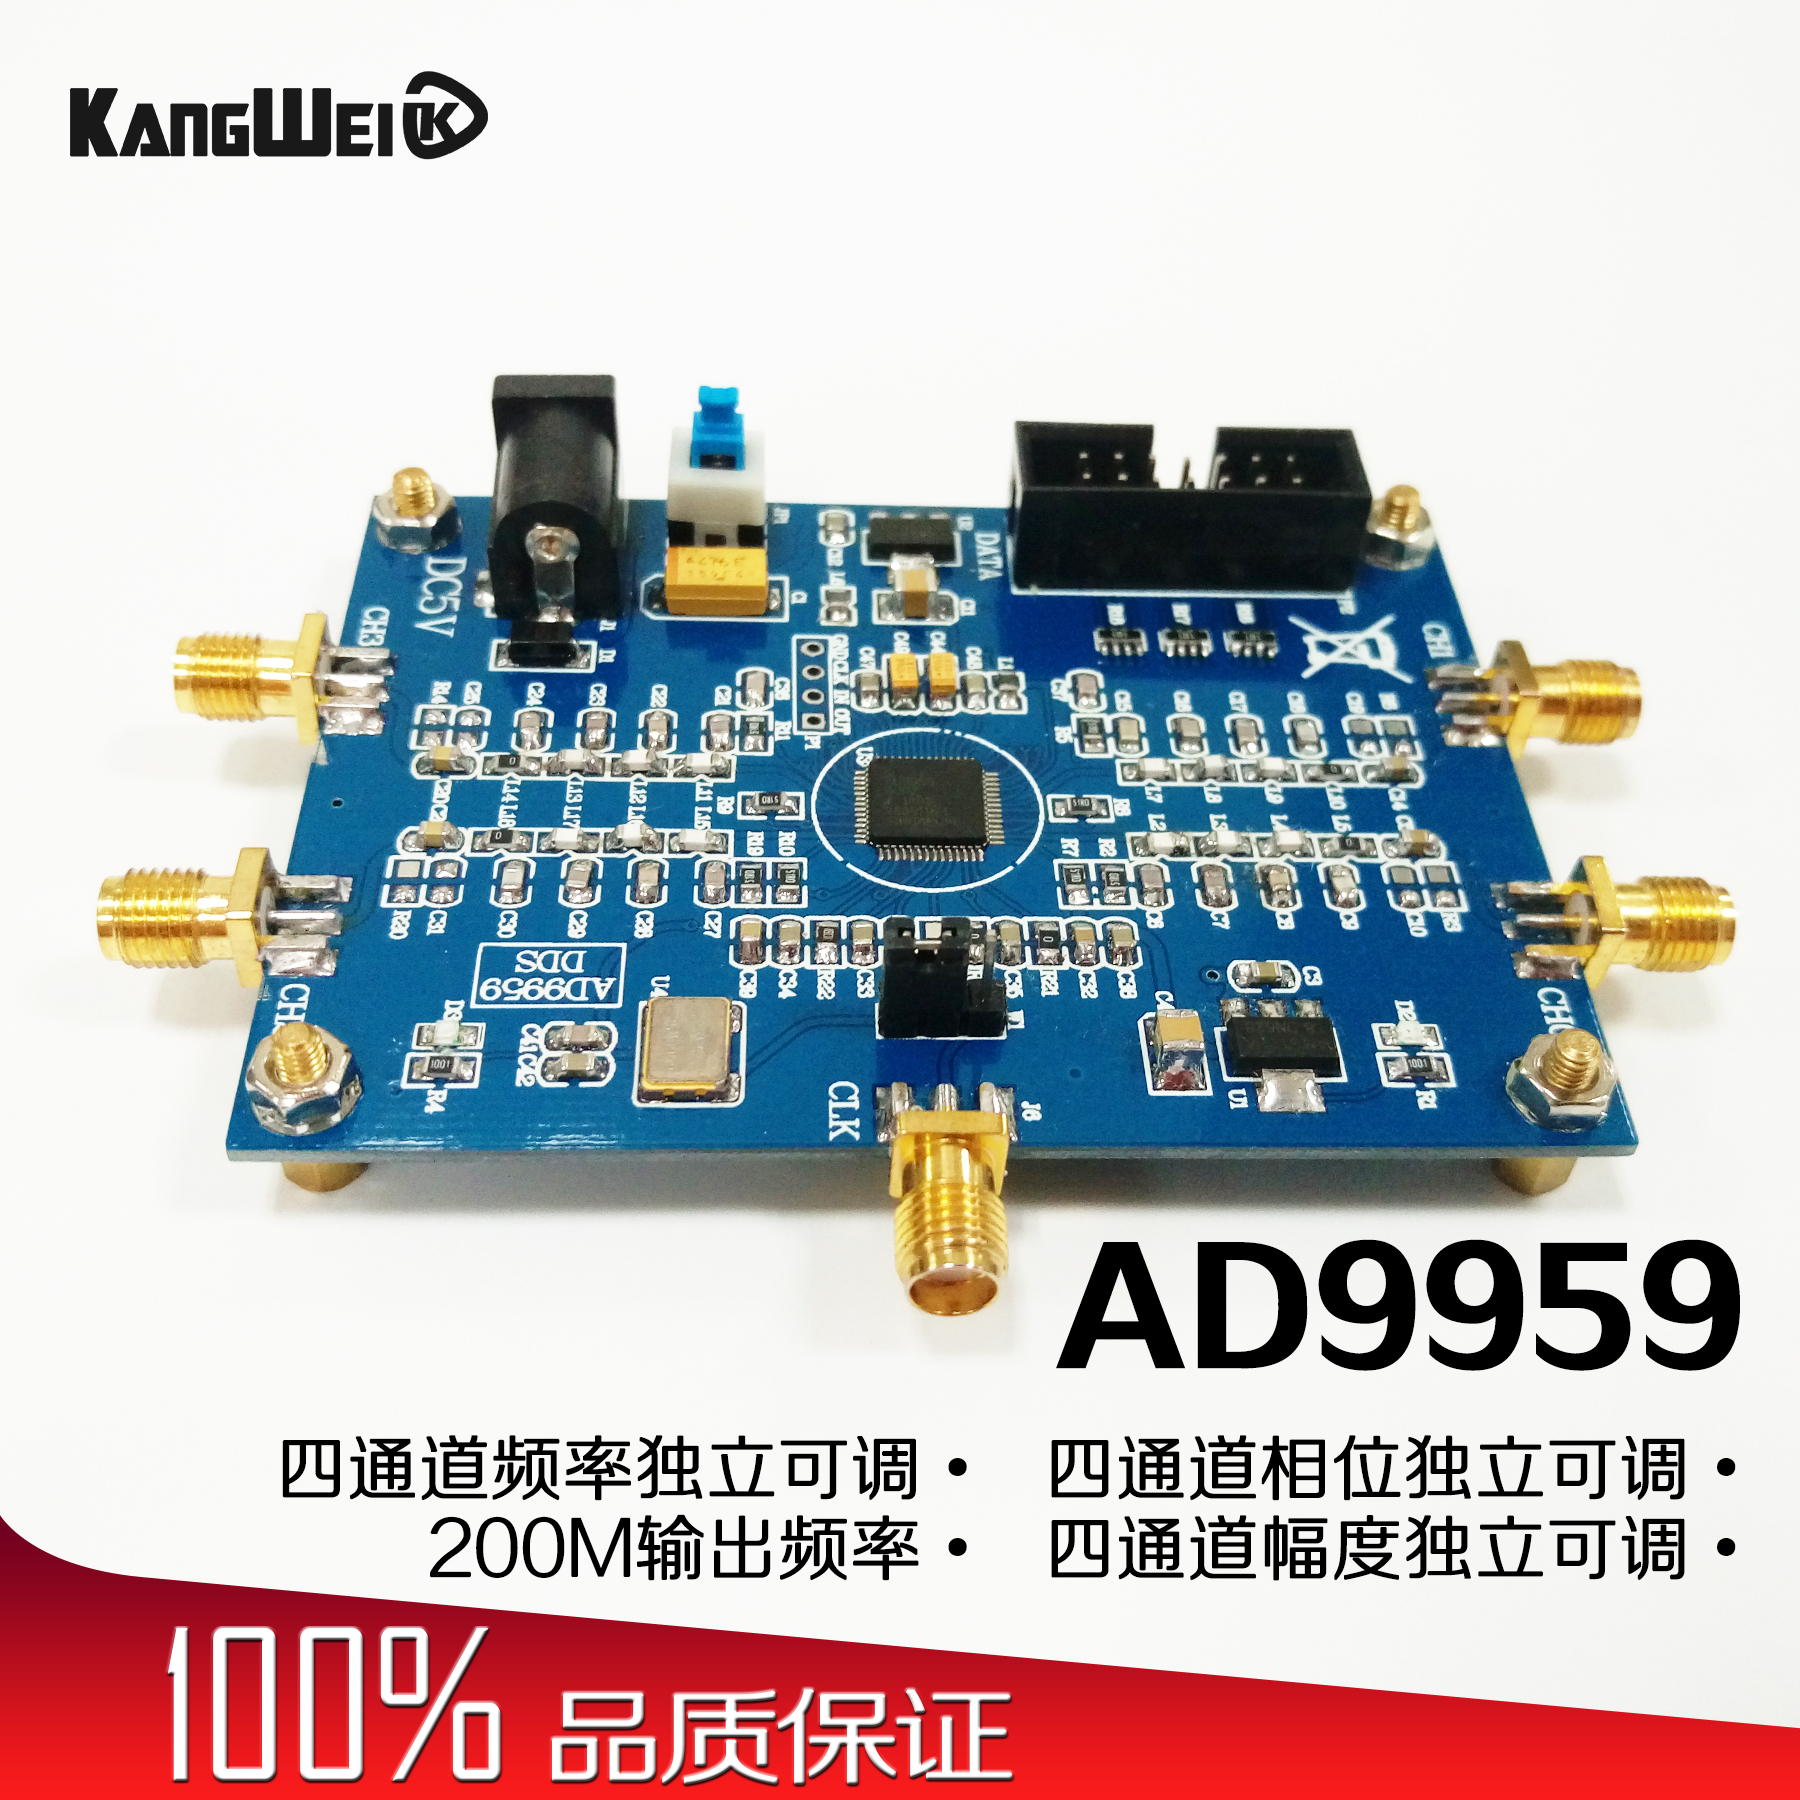 RF Signal Source AD9959 Signal Generator Four-channel DDS Module Performance Far Exceeds AD9854